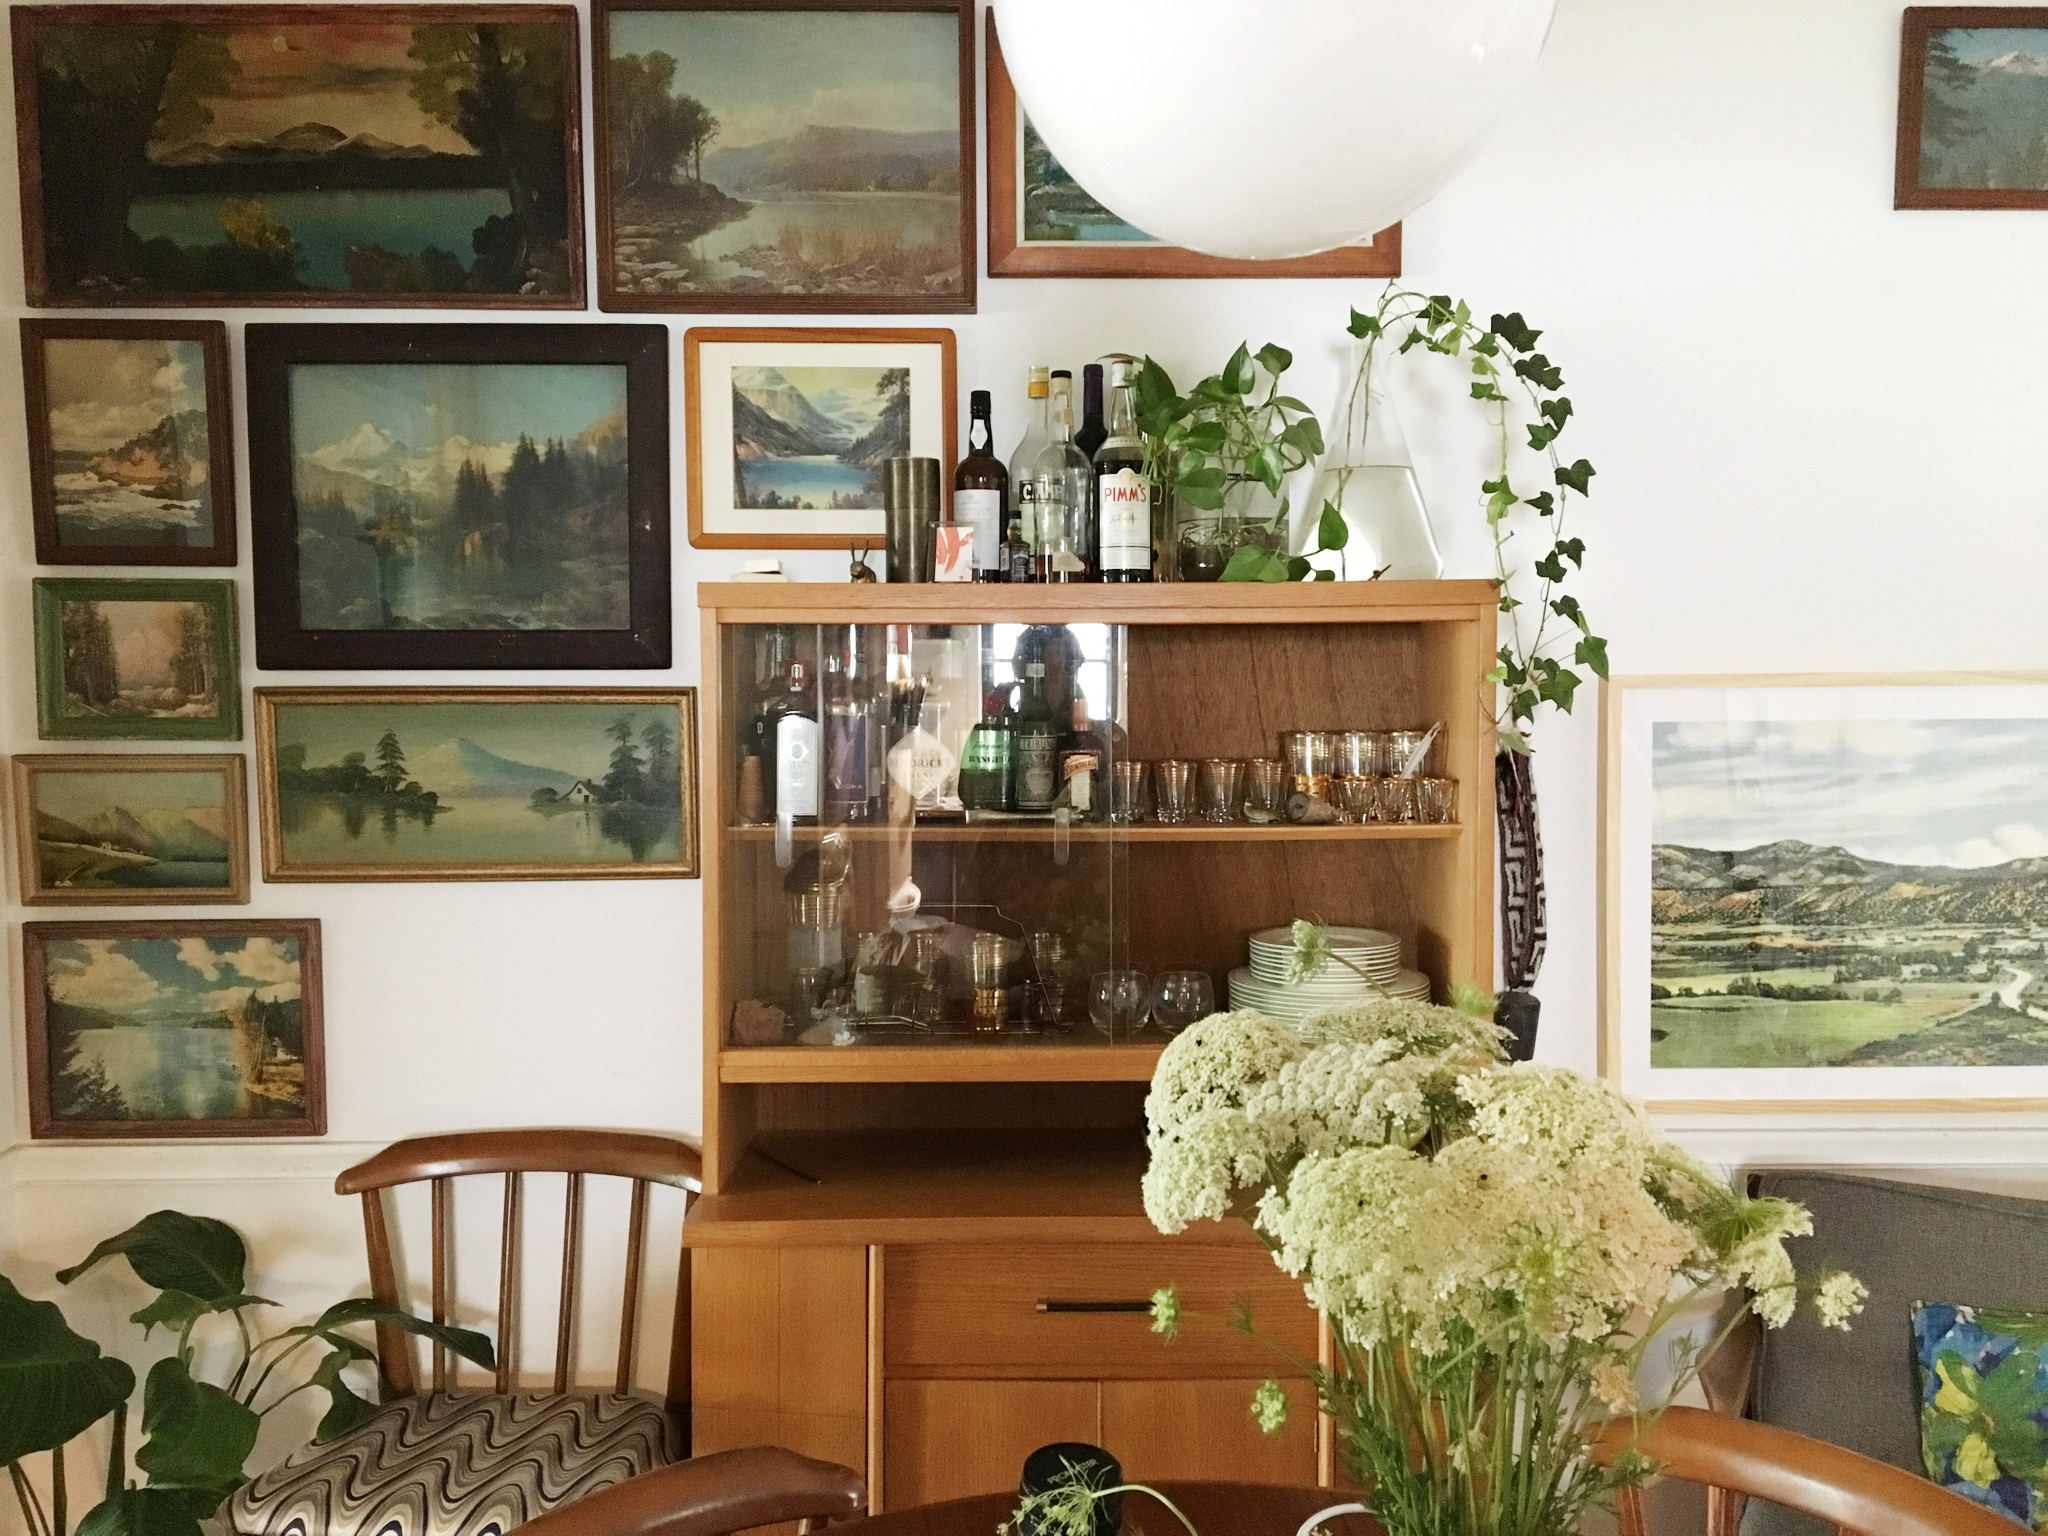 Ashley Daly is collecting vintage landscapes for her dining room wall. She didn't want to compromise for the sake of speed and plans to hang and rearrange as need be to complete this wall.